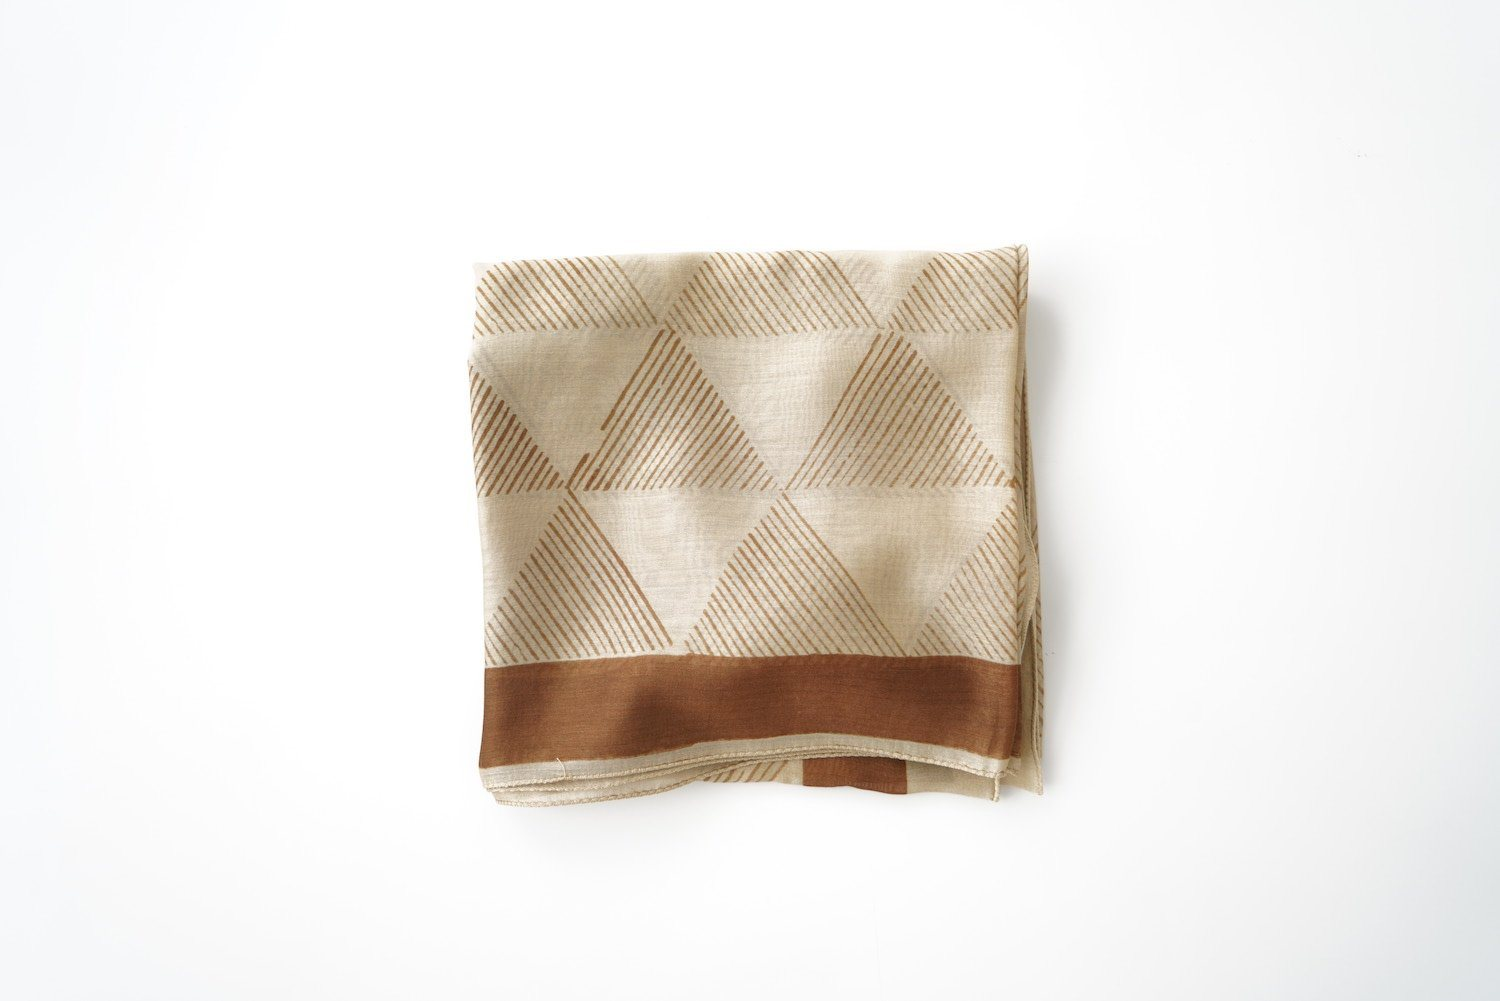 Studio Variously Dune Scarf Studio Variously